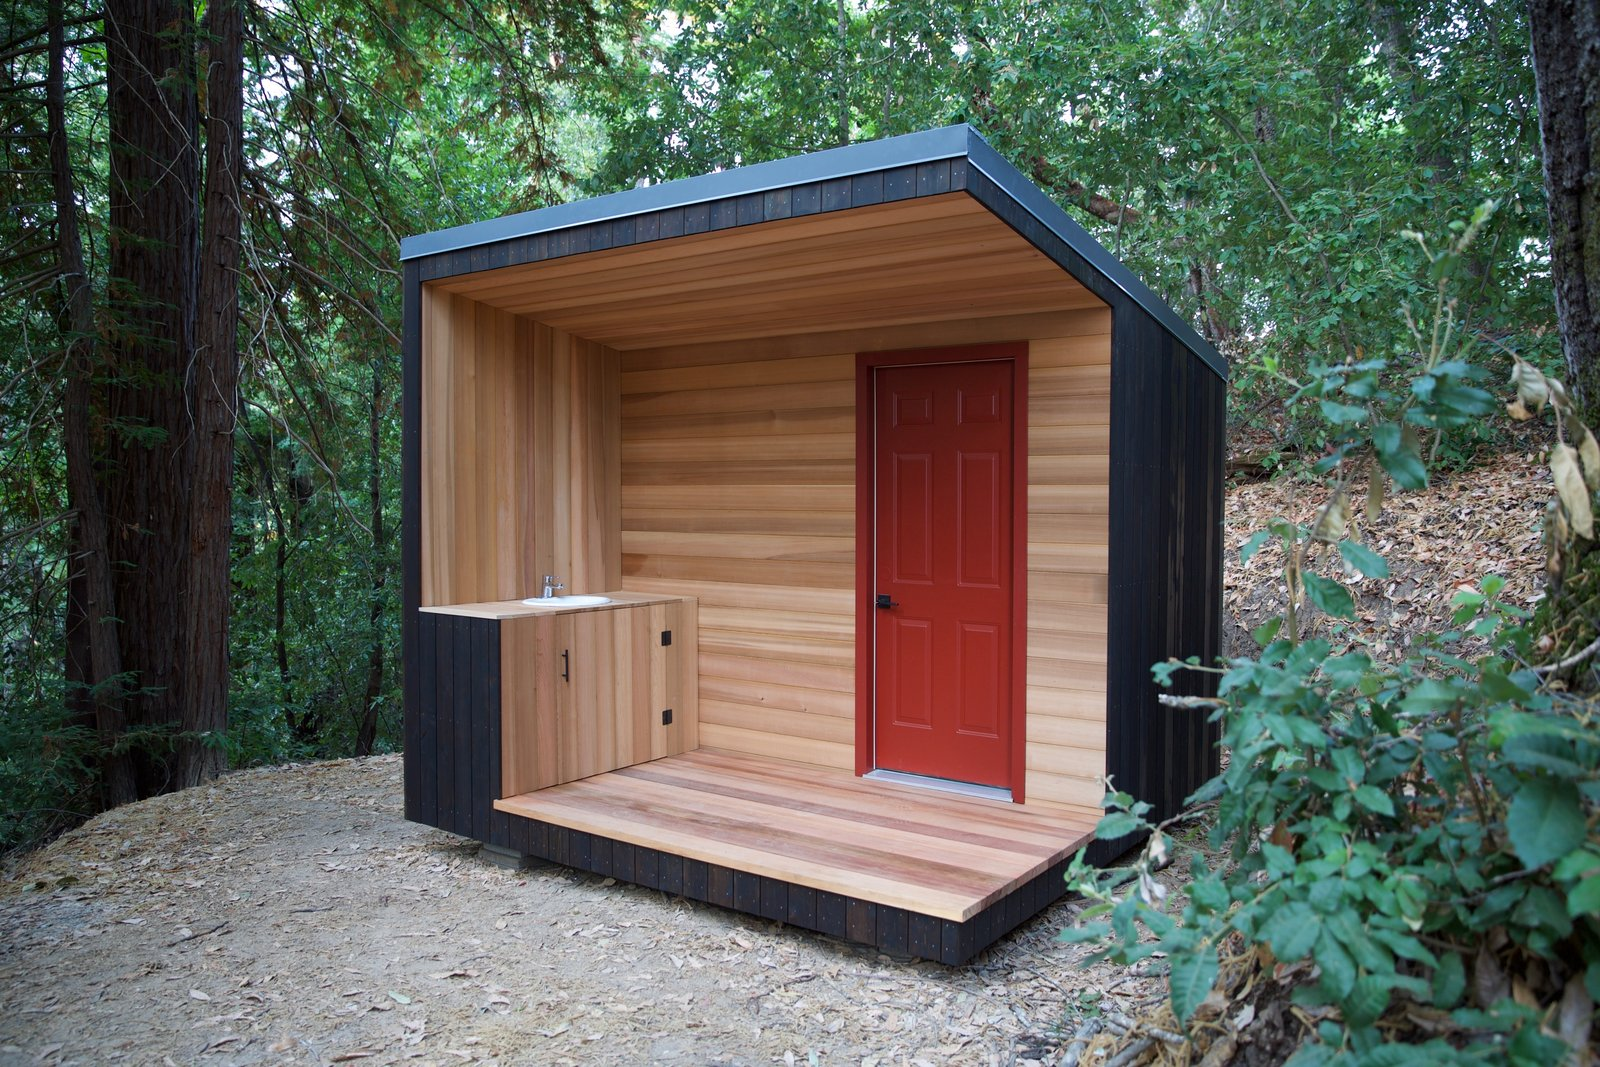 Build Your Own Modern Outhouse - Dwell on wooden camping plans, wooden deck plans, wooden table plans, wooden garden plans, wooden chairs plans, wooden dock plans, wooden home plans, wooden well plans, wooden sink plans, wooden porch plans, wooden bar plans, wooden boat plans, wooden shop plans, wooden tractor plans, wooden loft plans, wooden bank plans, wooden balcony plans, wooden bridge plans, wooden flowers plans, wooden small house plans,